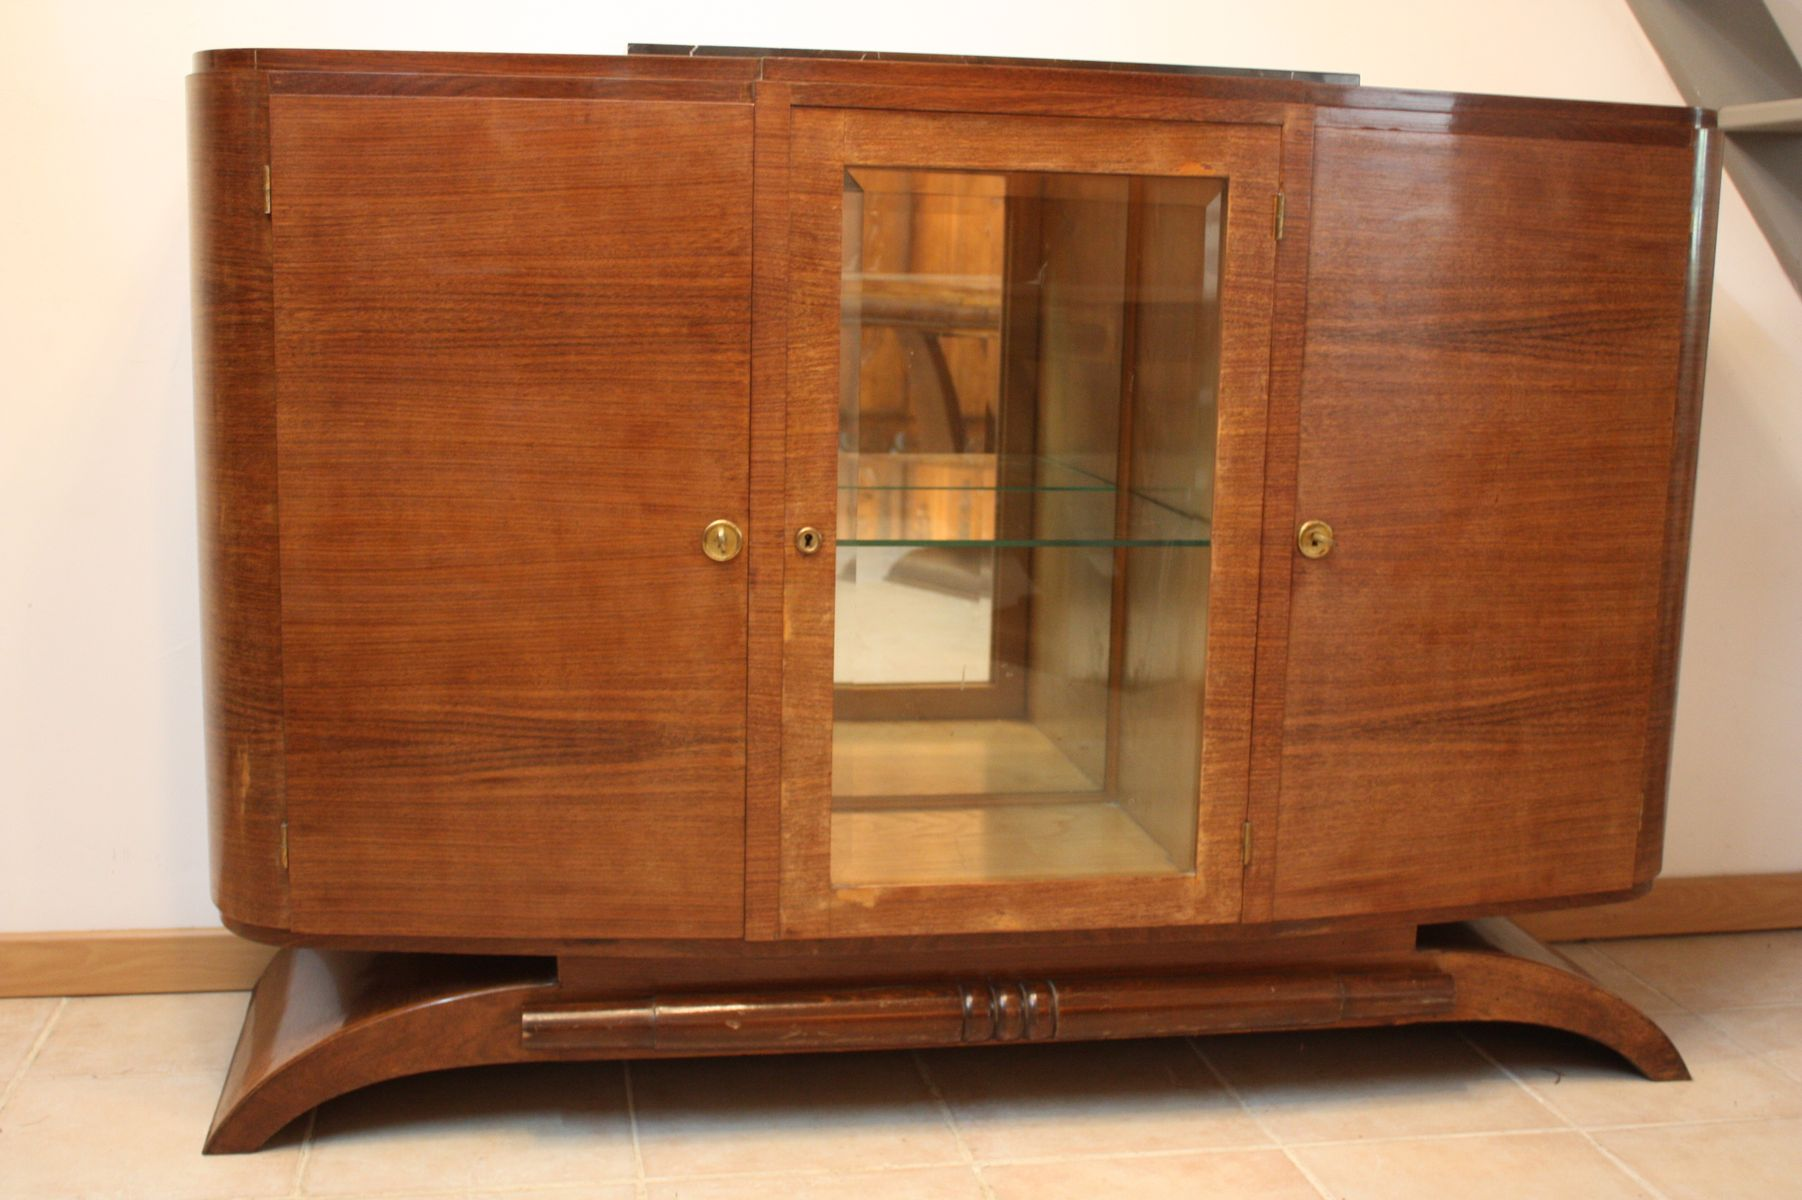 art d co vitrine 1930s for sale at pamono. Black Bedroom Furniture Sets. Home Design Ideas